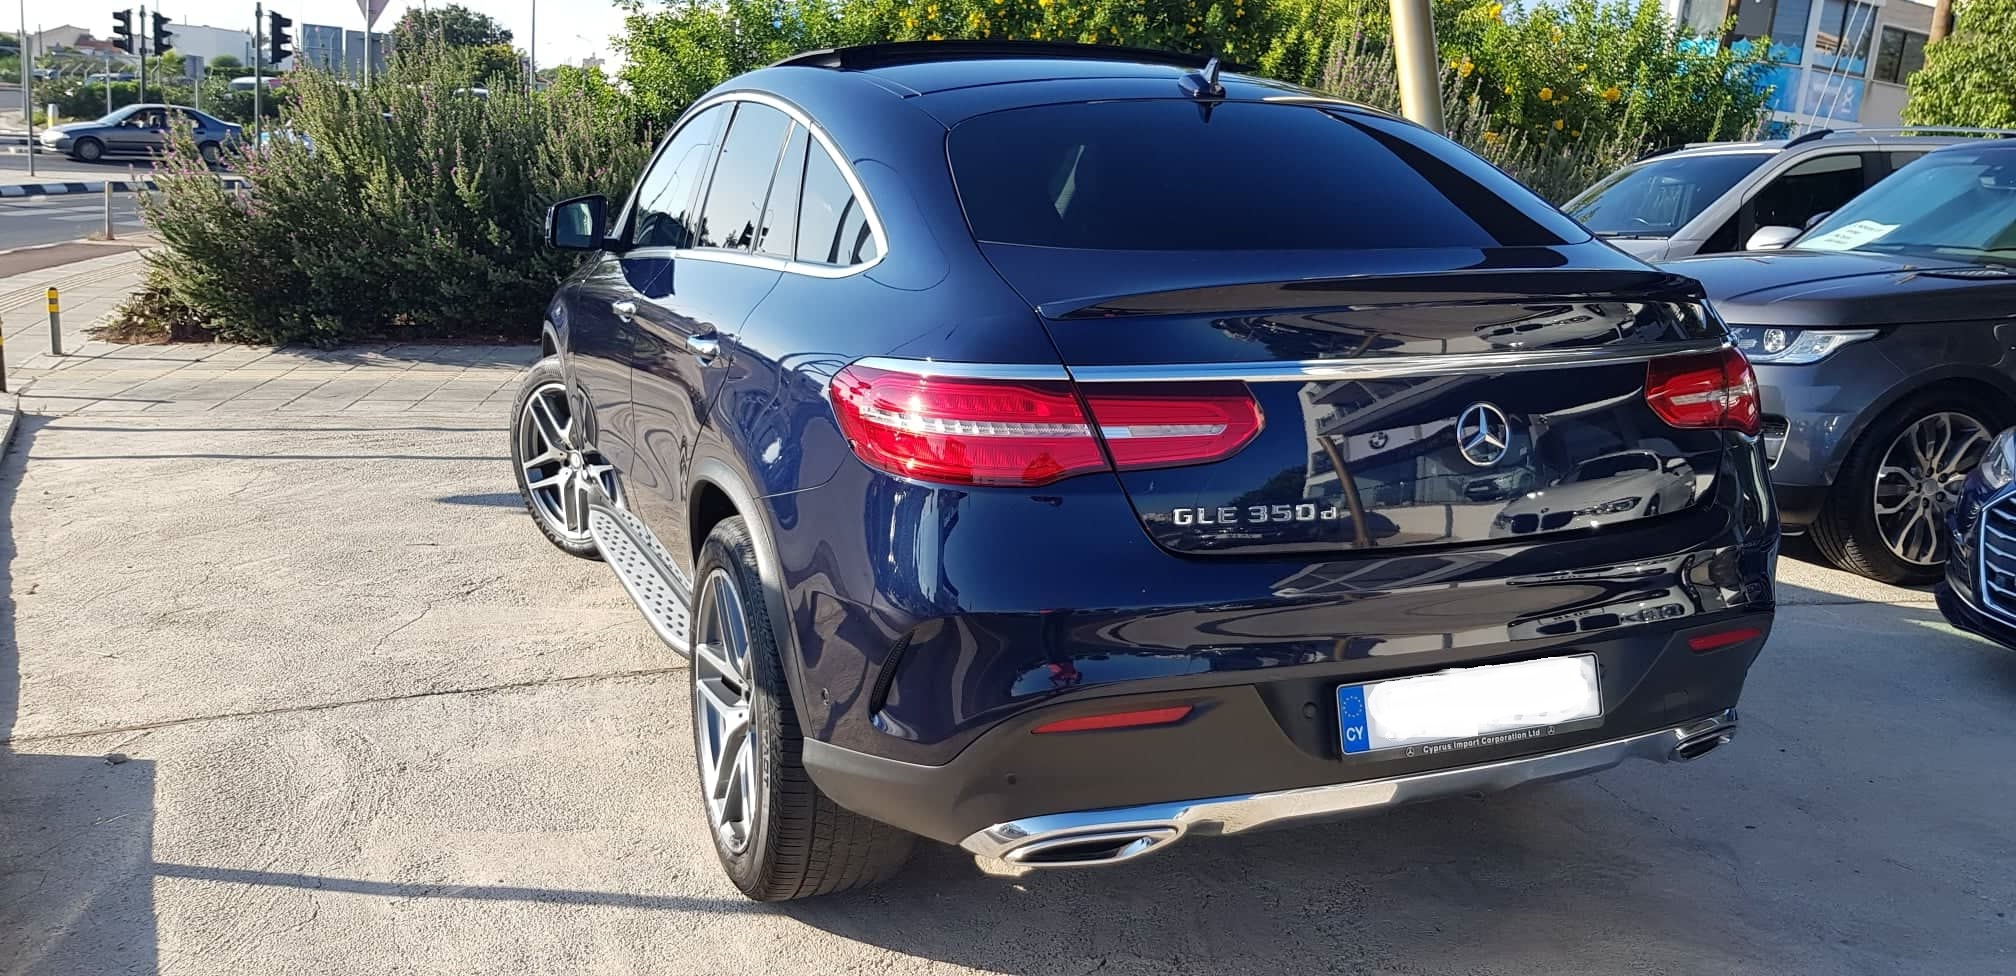 Mercedes GLE 350D AMG 4 MATIC